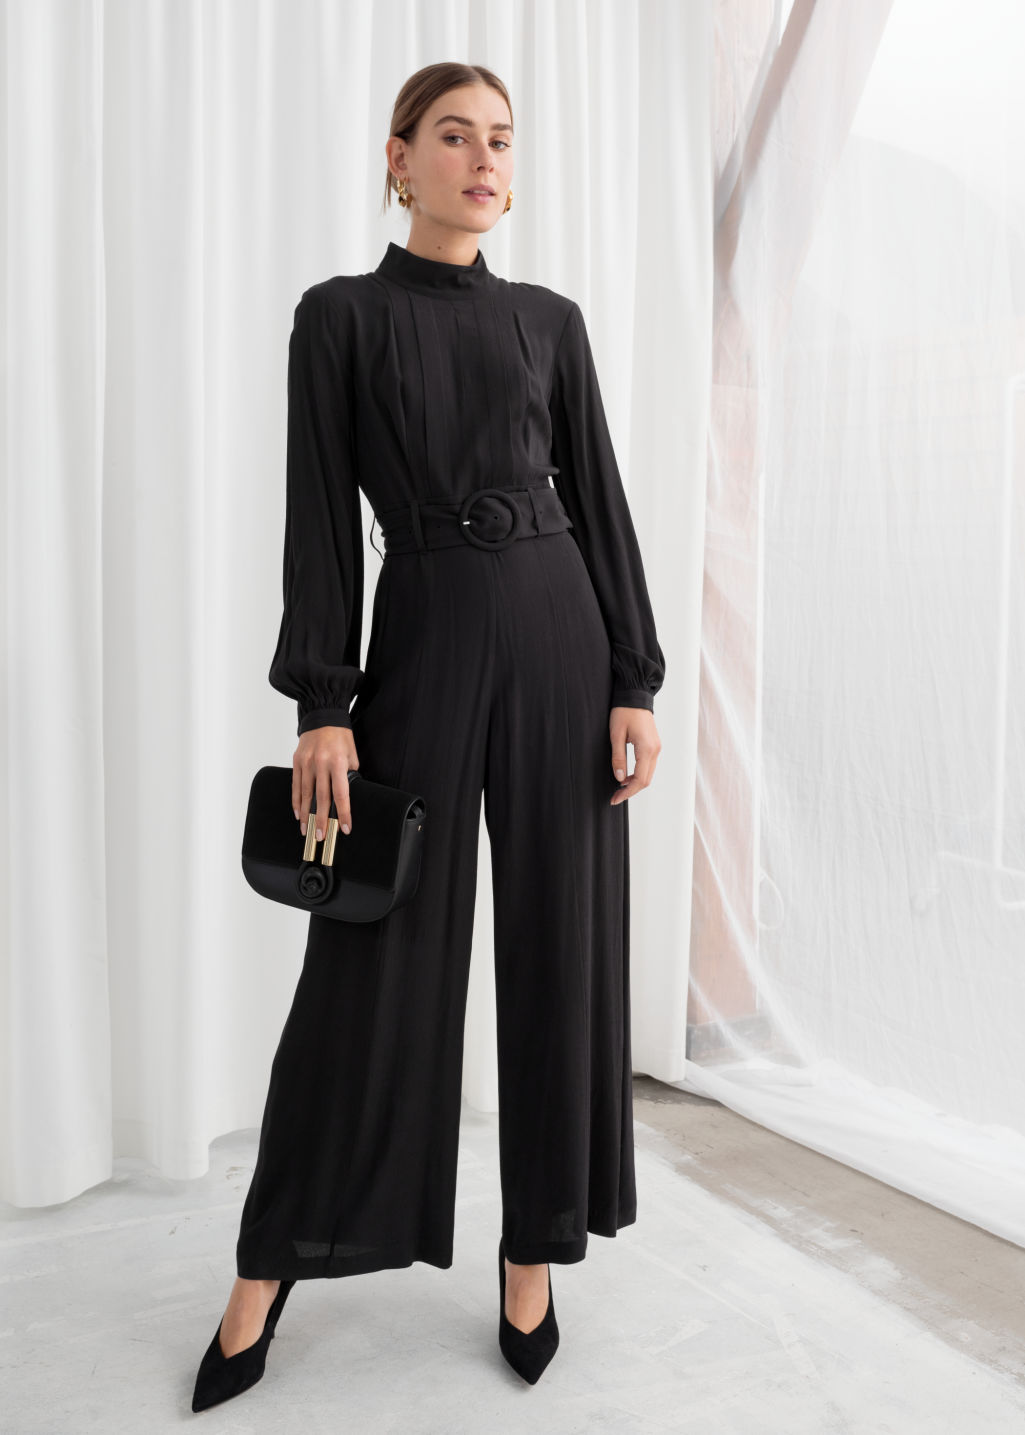 b95731b8178c Long Sleeve Belted Jumpsuit - Black - Jumpsuits   Playsuits ...